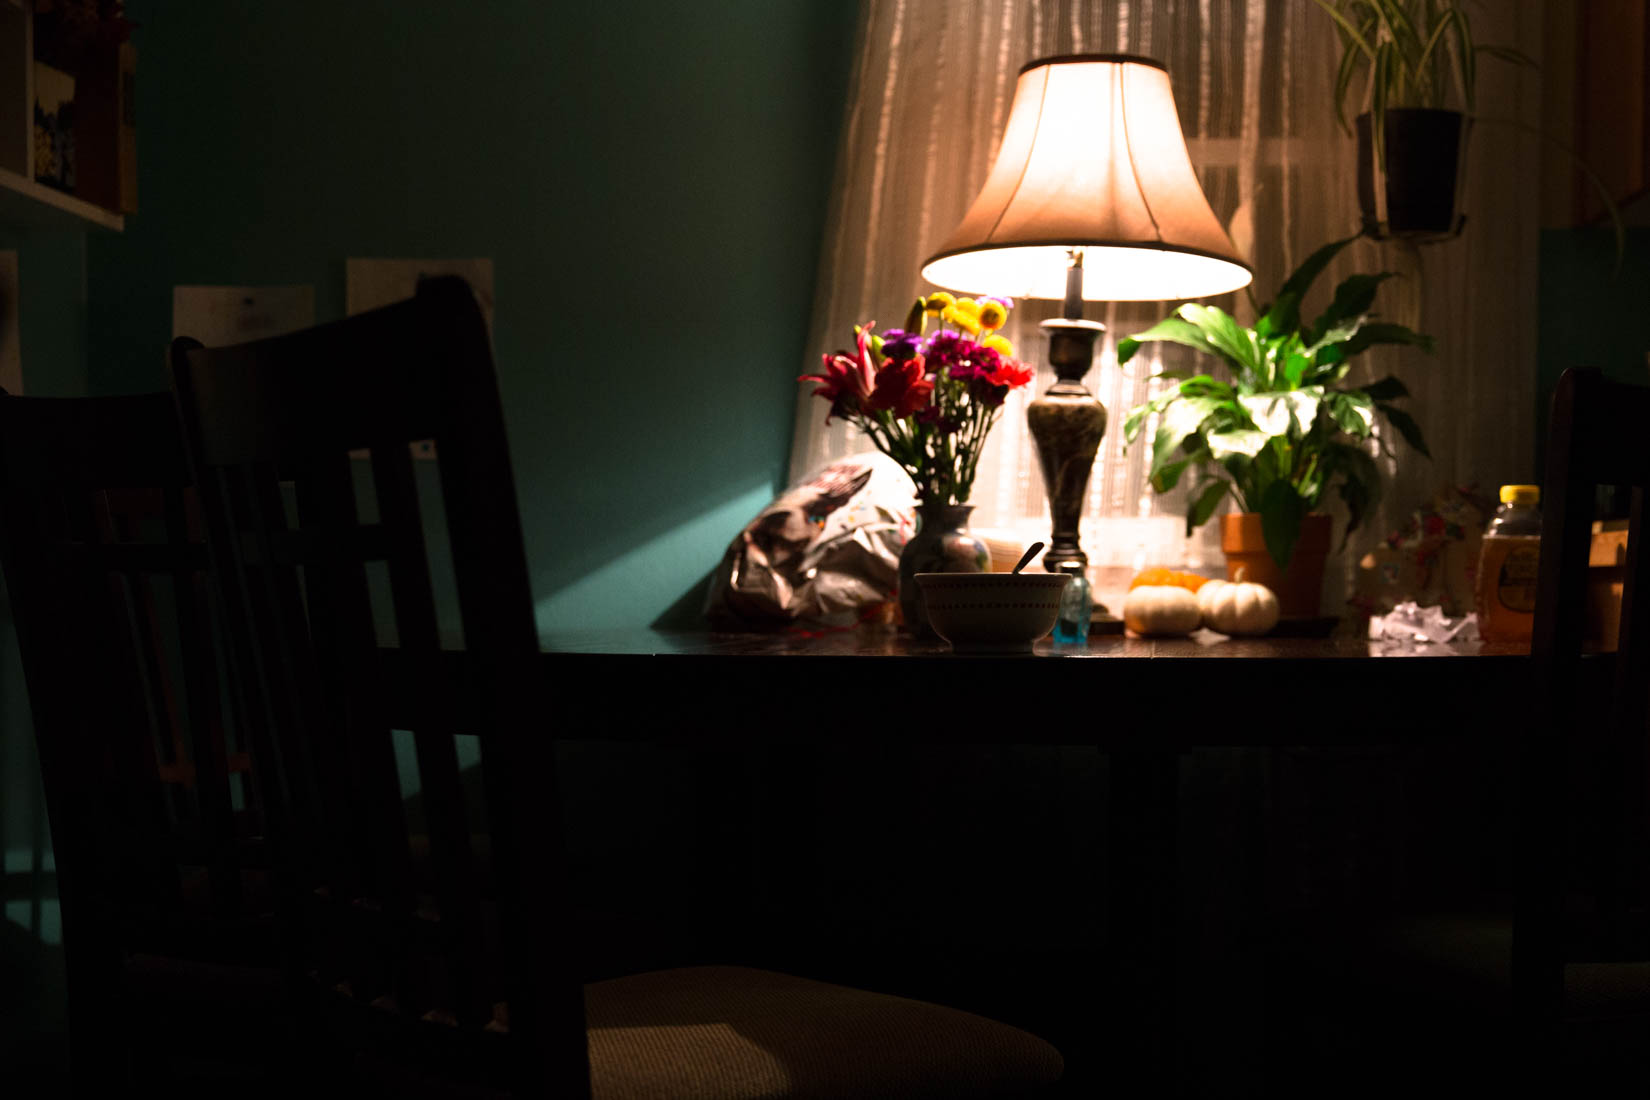 Kitchen table lit with only one lamp. Holding plants and a bowl of cereal early in the morning.